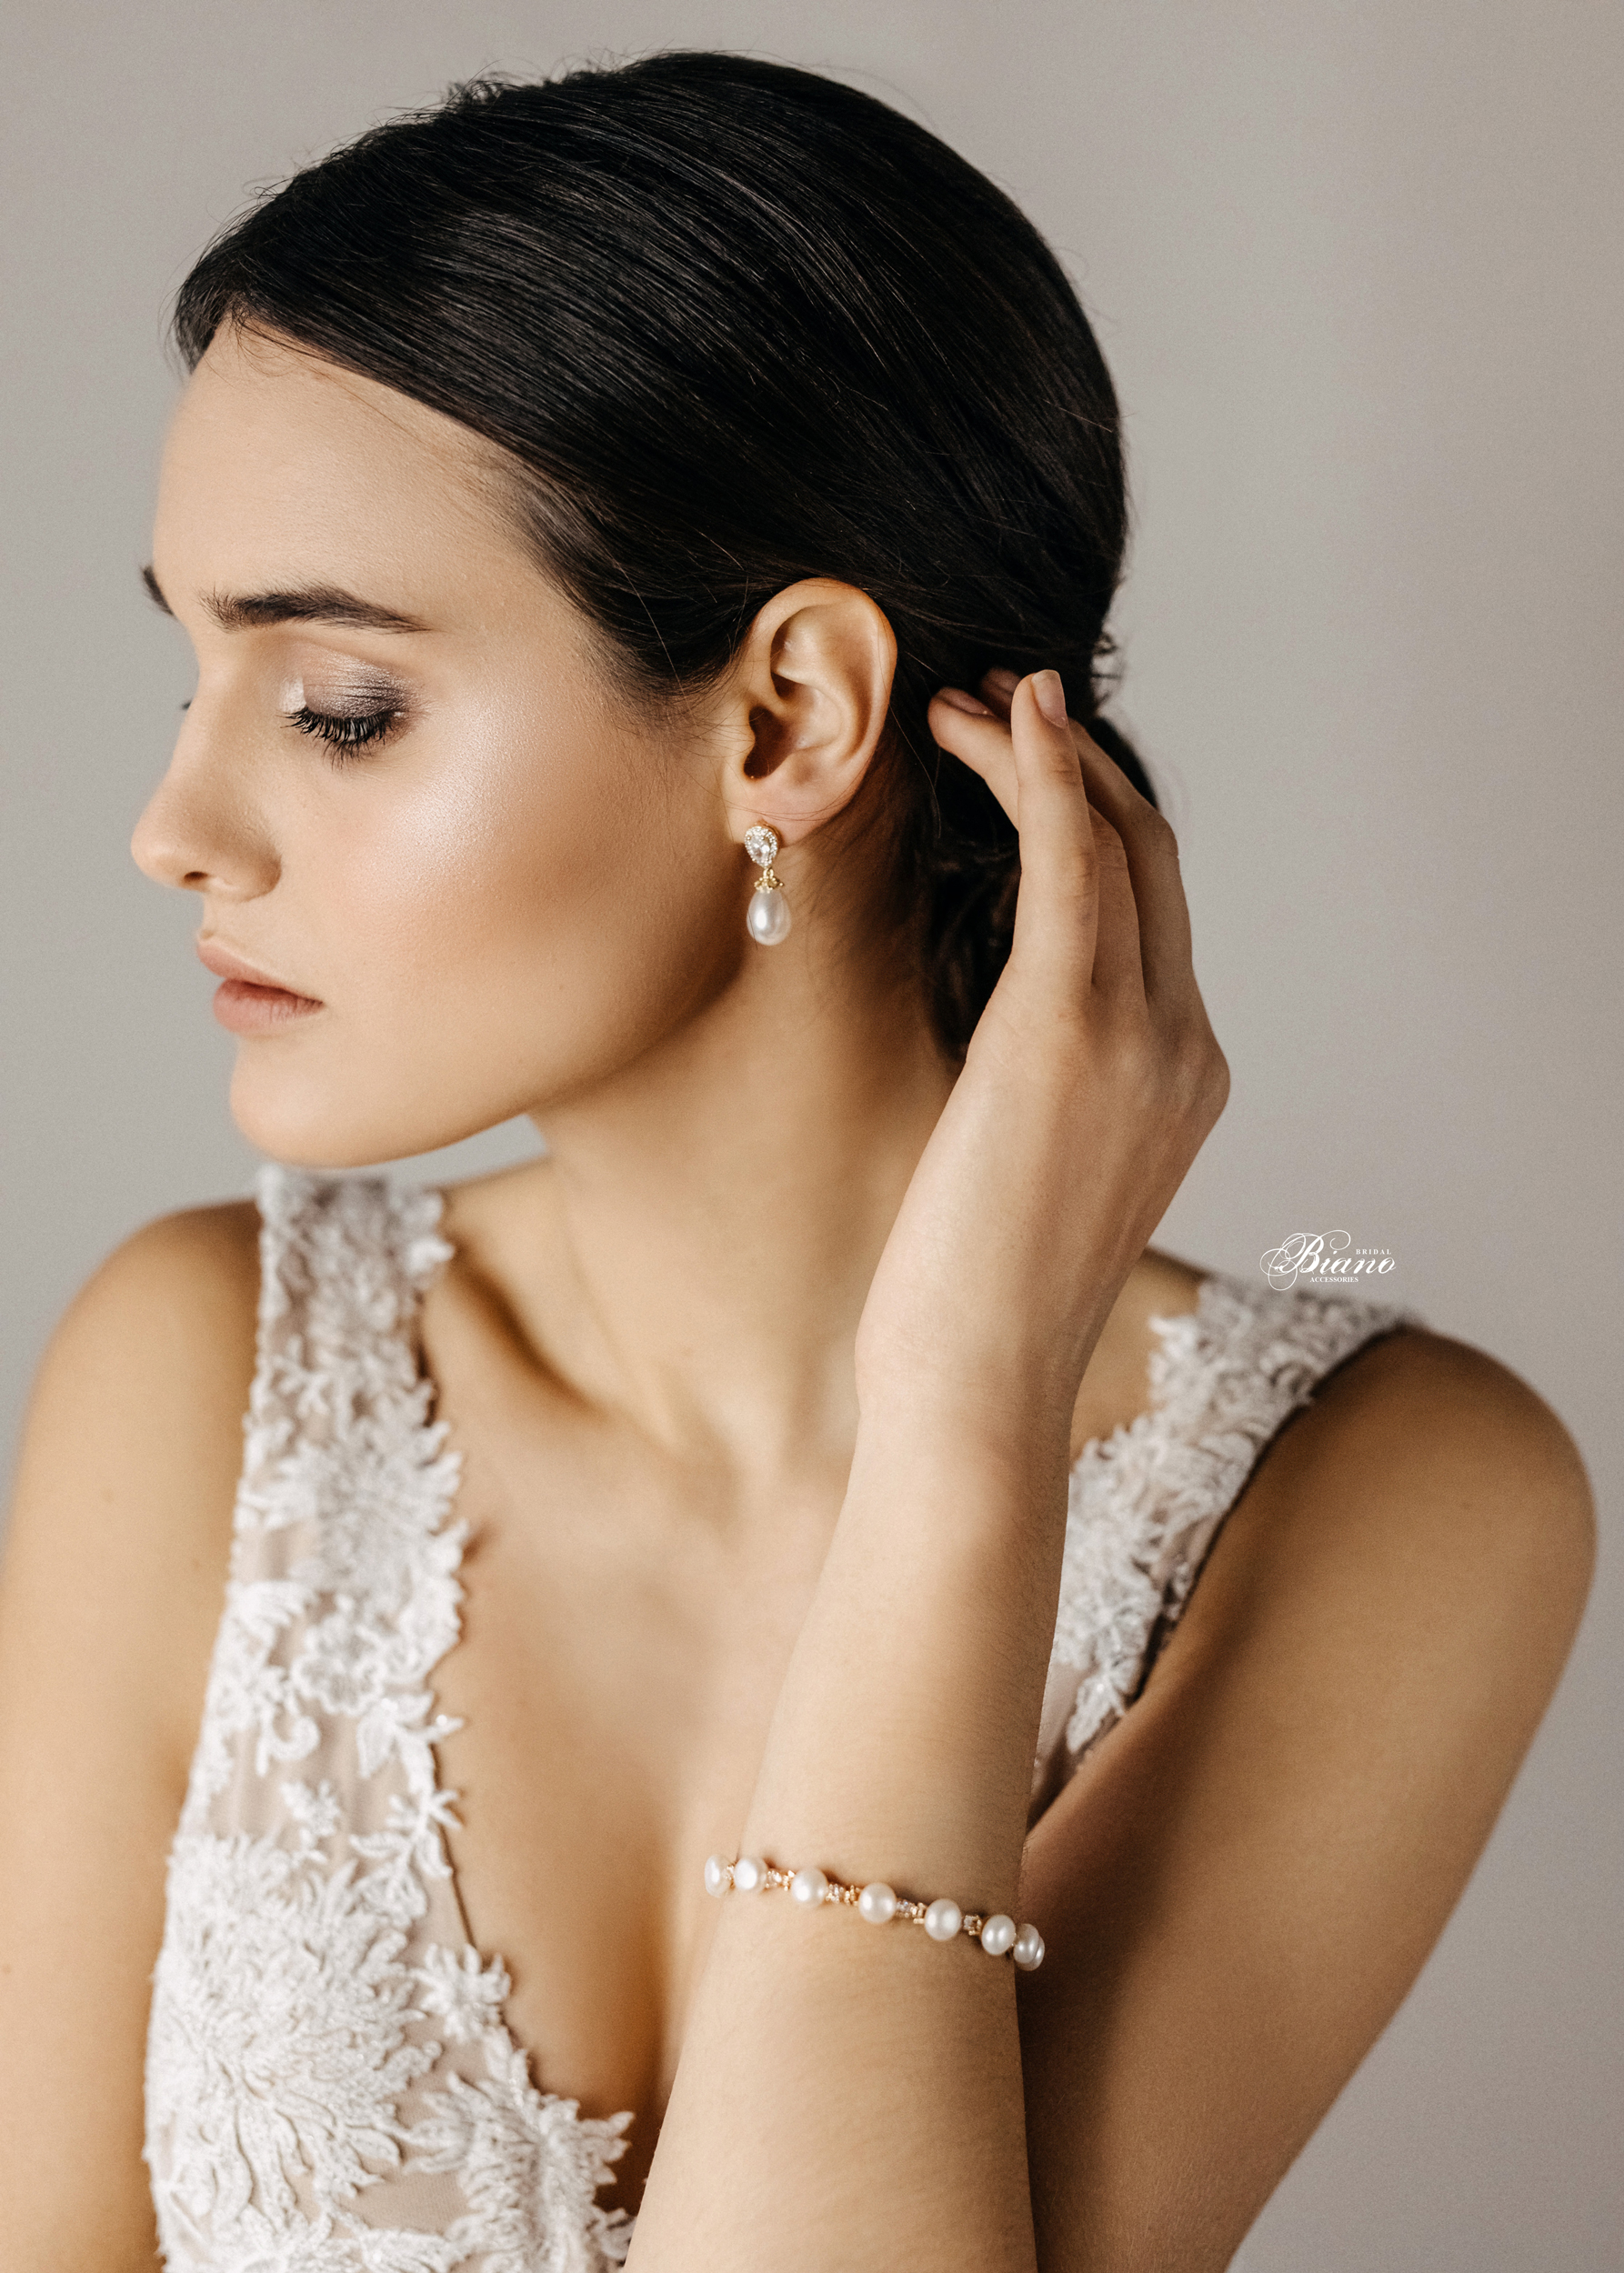 Find your perfect Bridesmaid Earrings - Handmade in SwitzerlandUnique DesignPossibility to Rush OrdersFree Shipping WorldwideCustomisable OrdersFast response on your questions